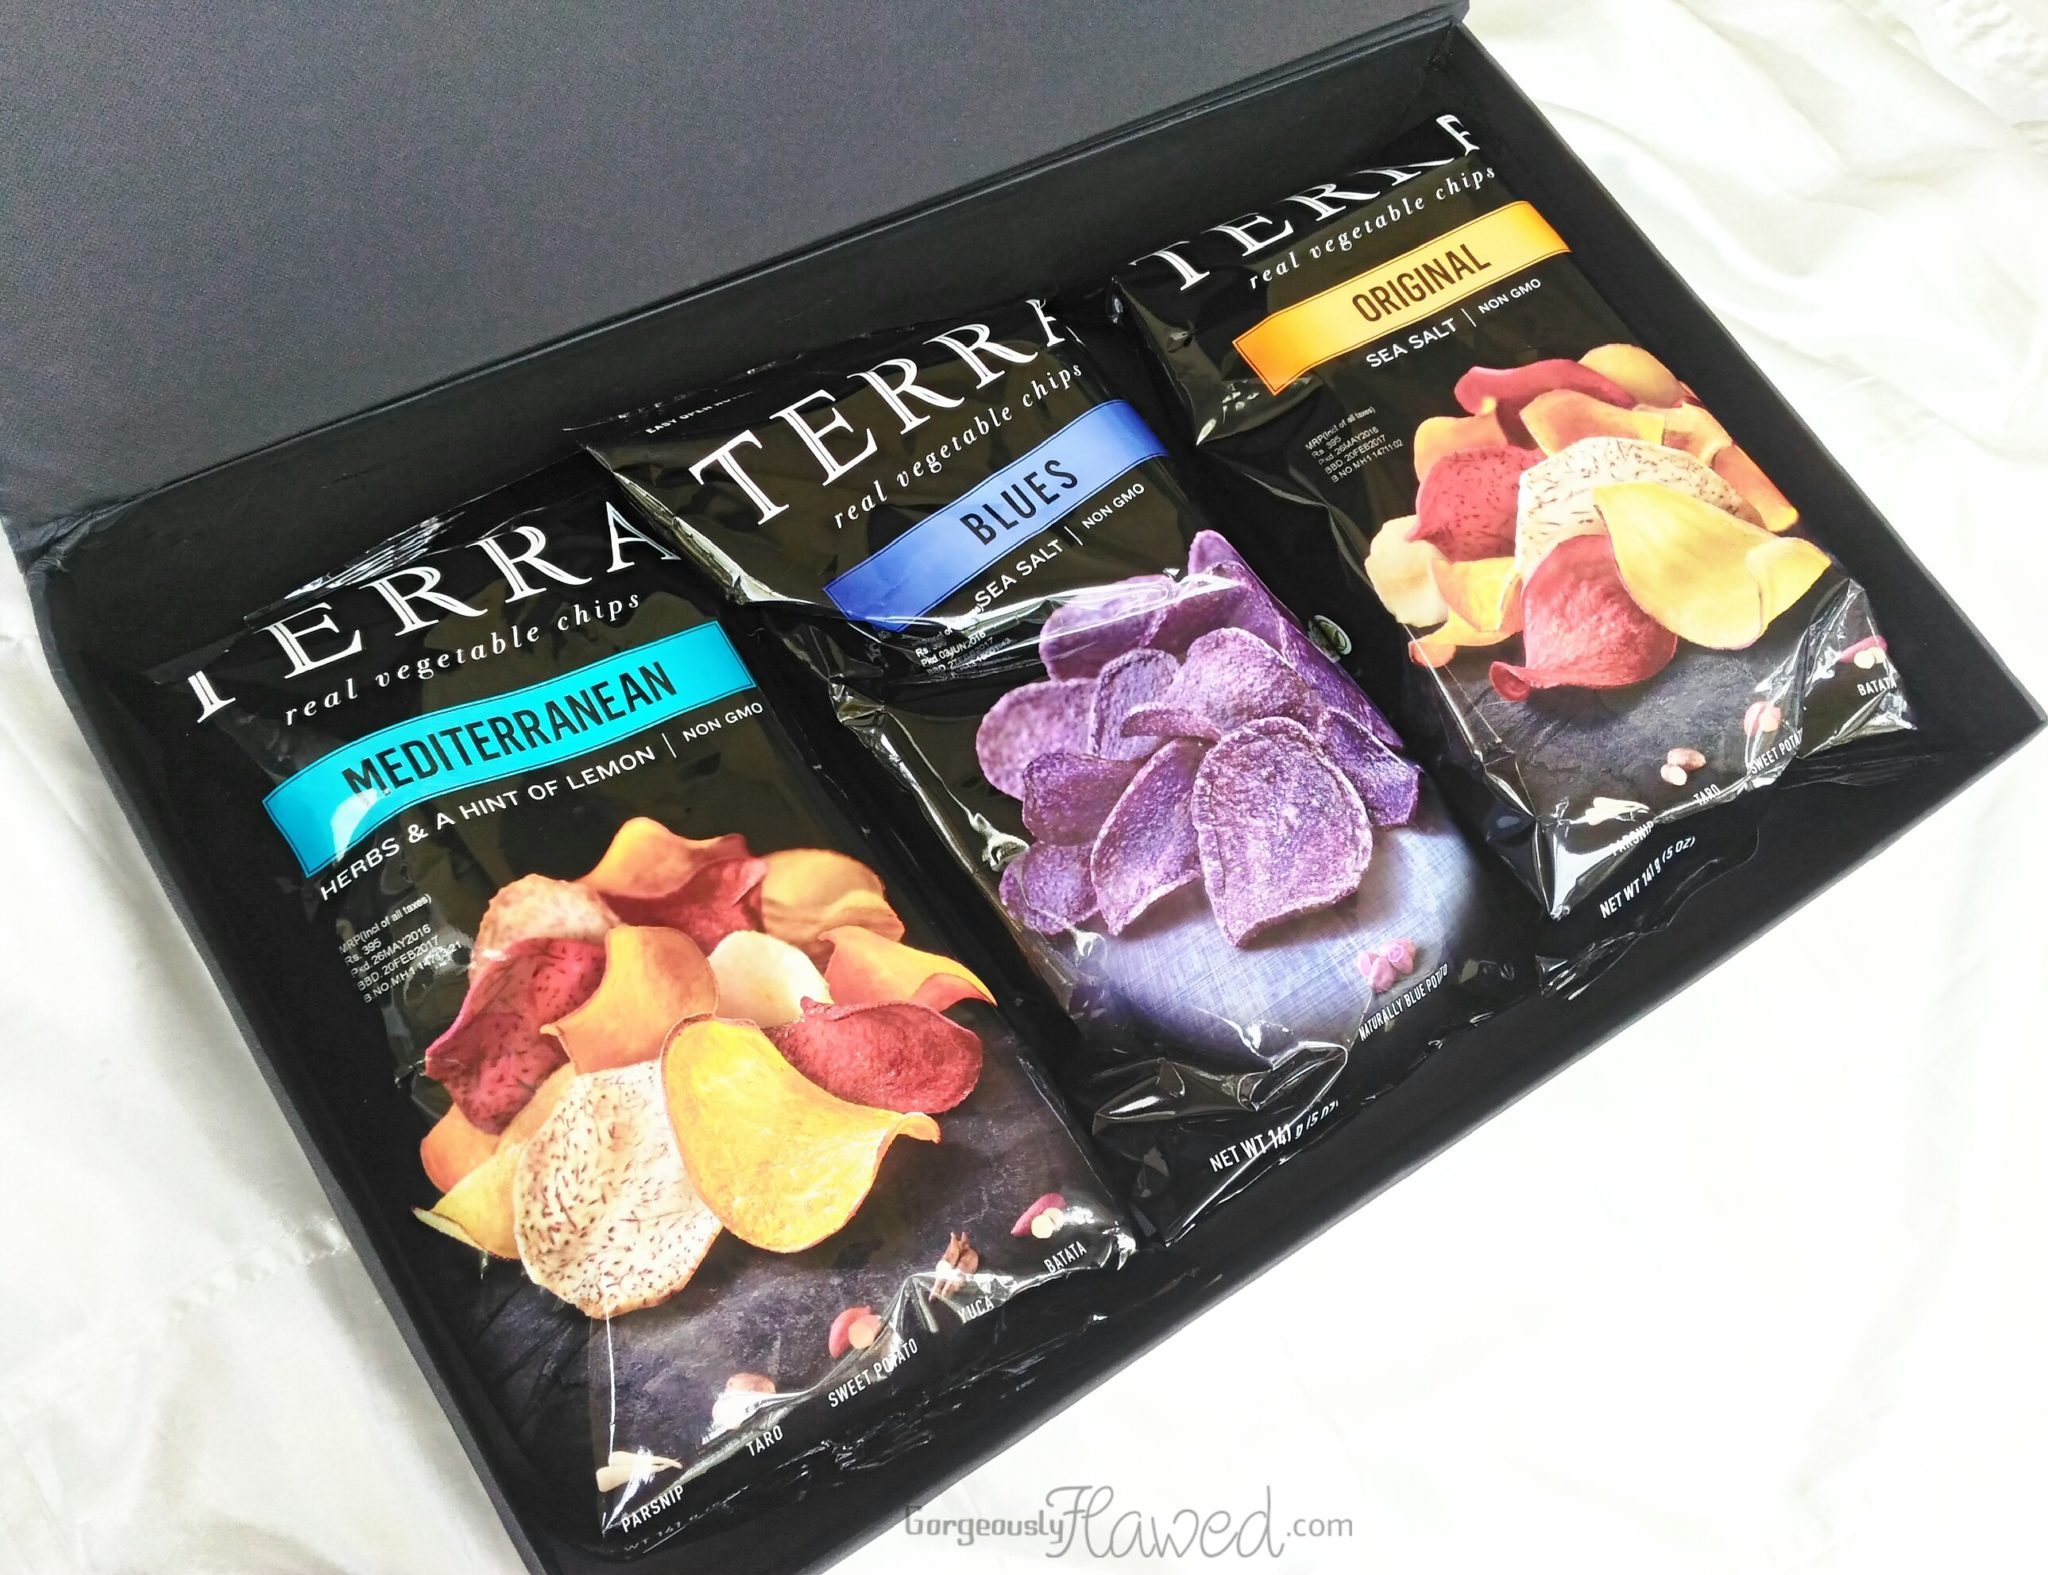 Terra Real Vegetable Chips - The Healthified Version Of Chips!